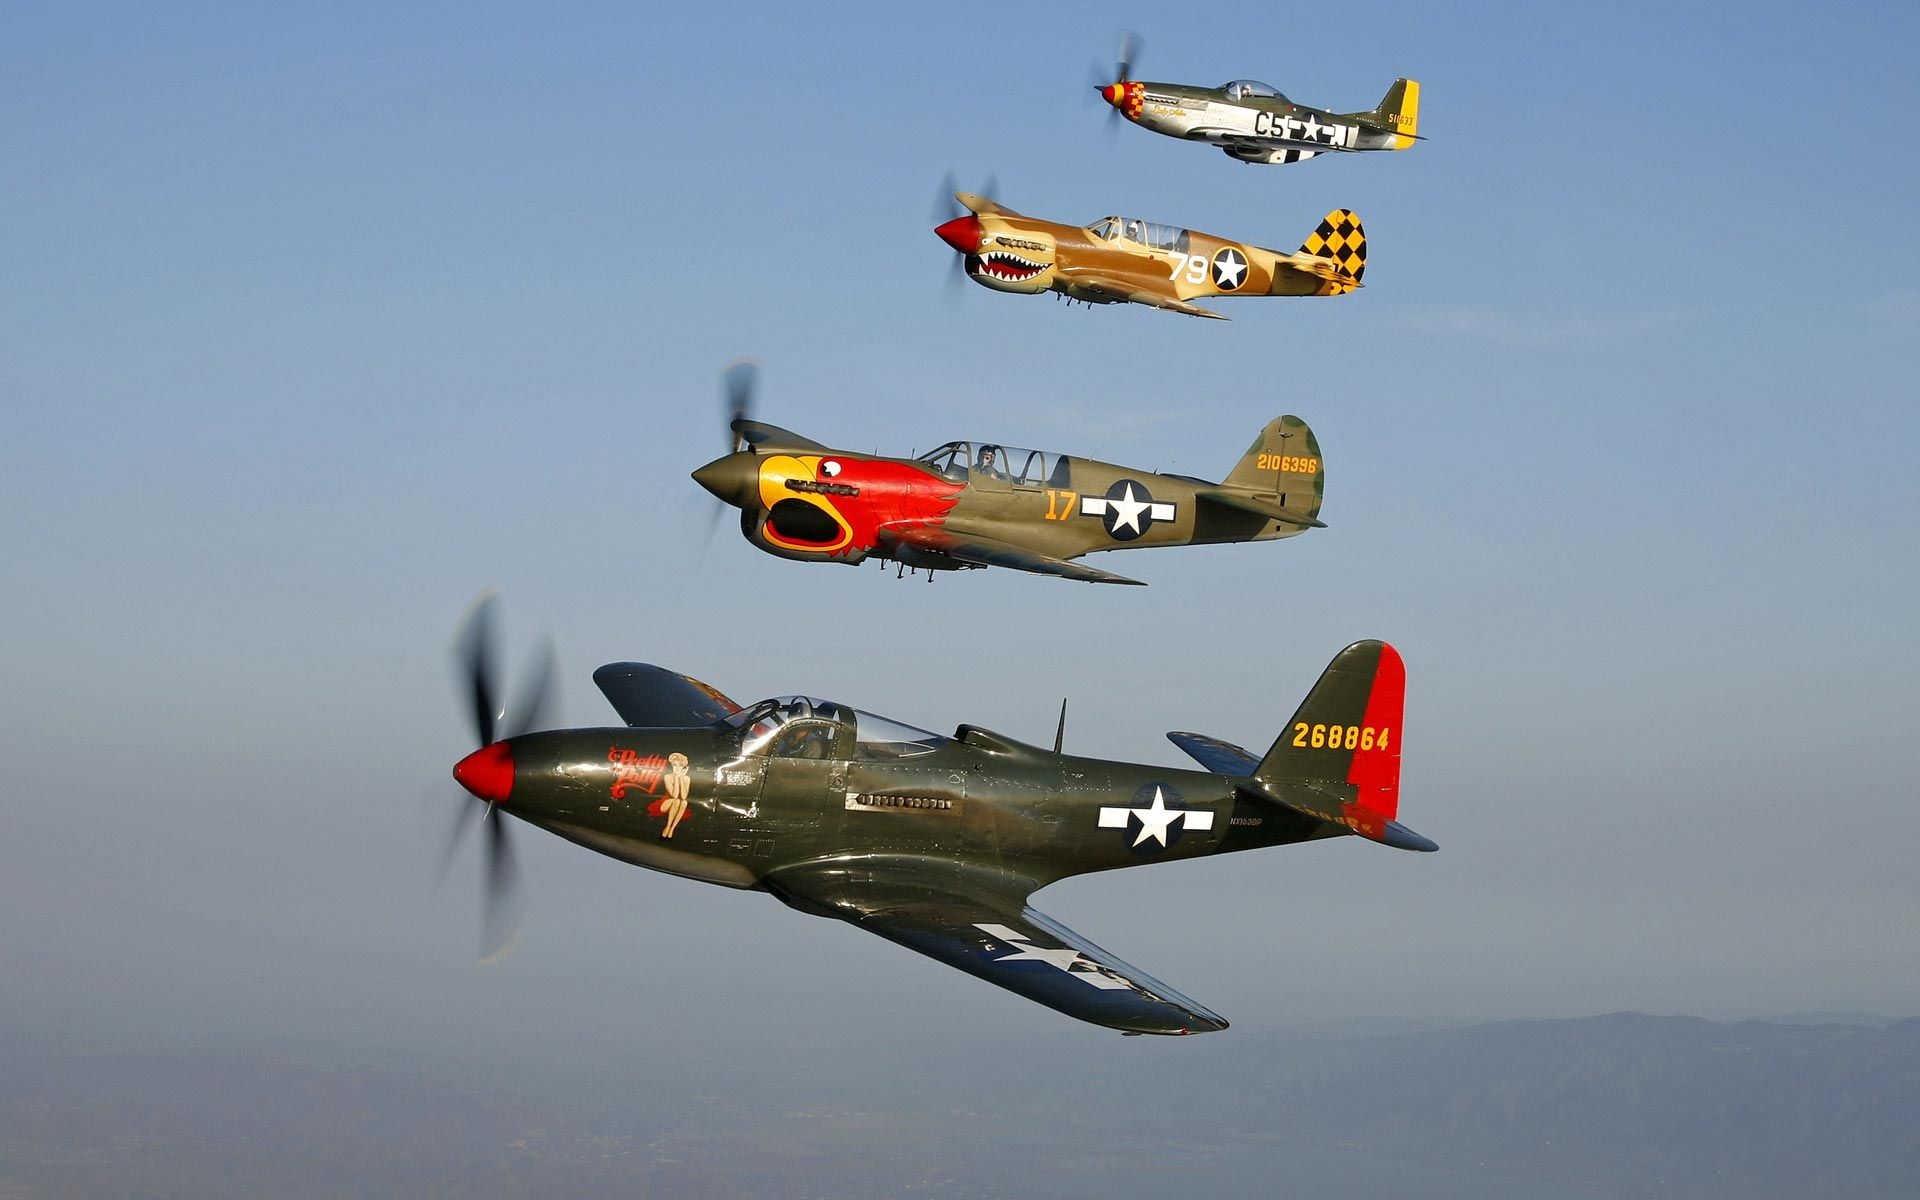 Old Airplanes Hd Wallpaper Wallpaper Placecom Flugzeug